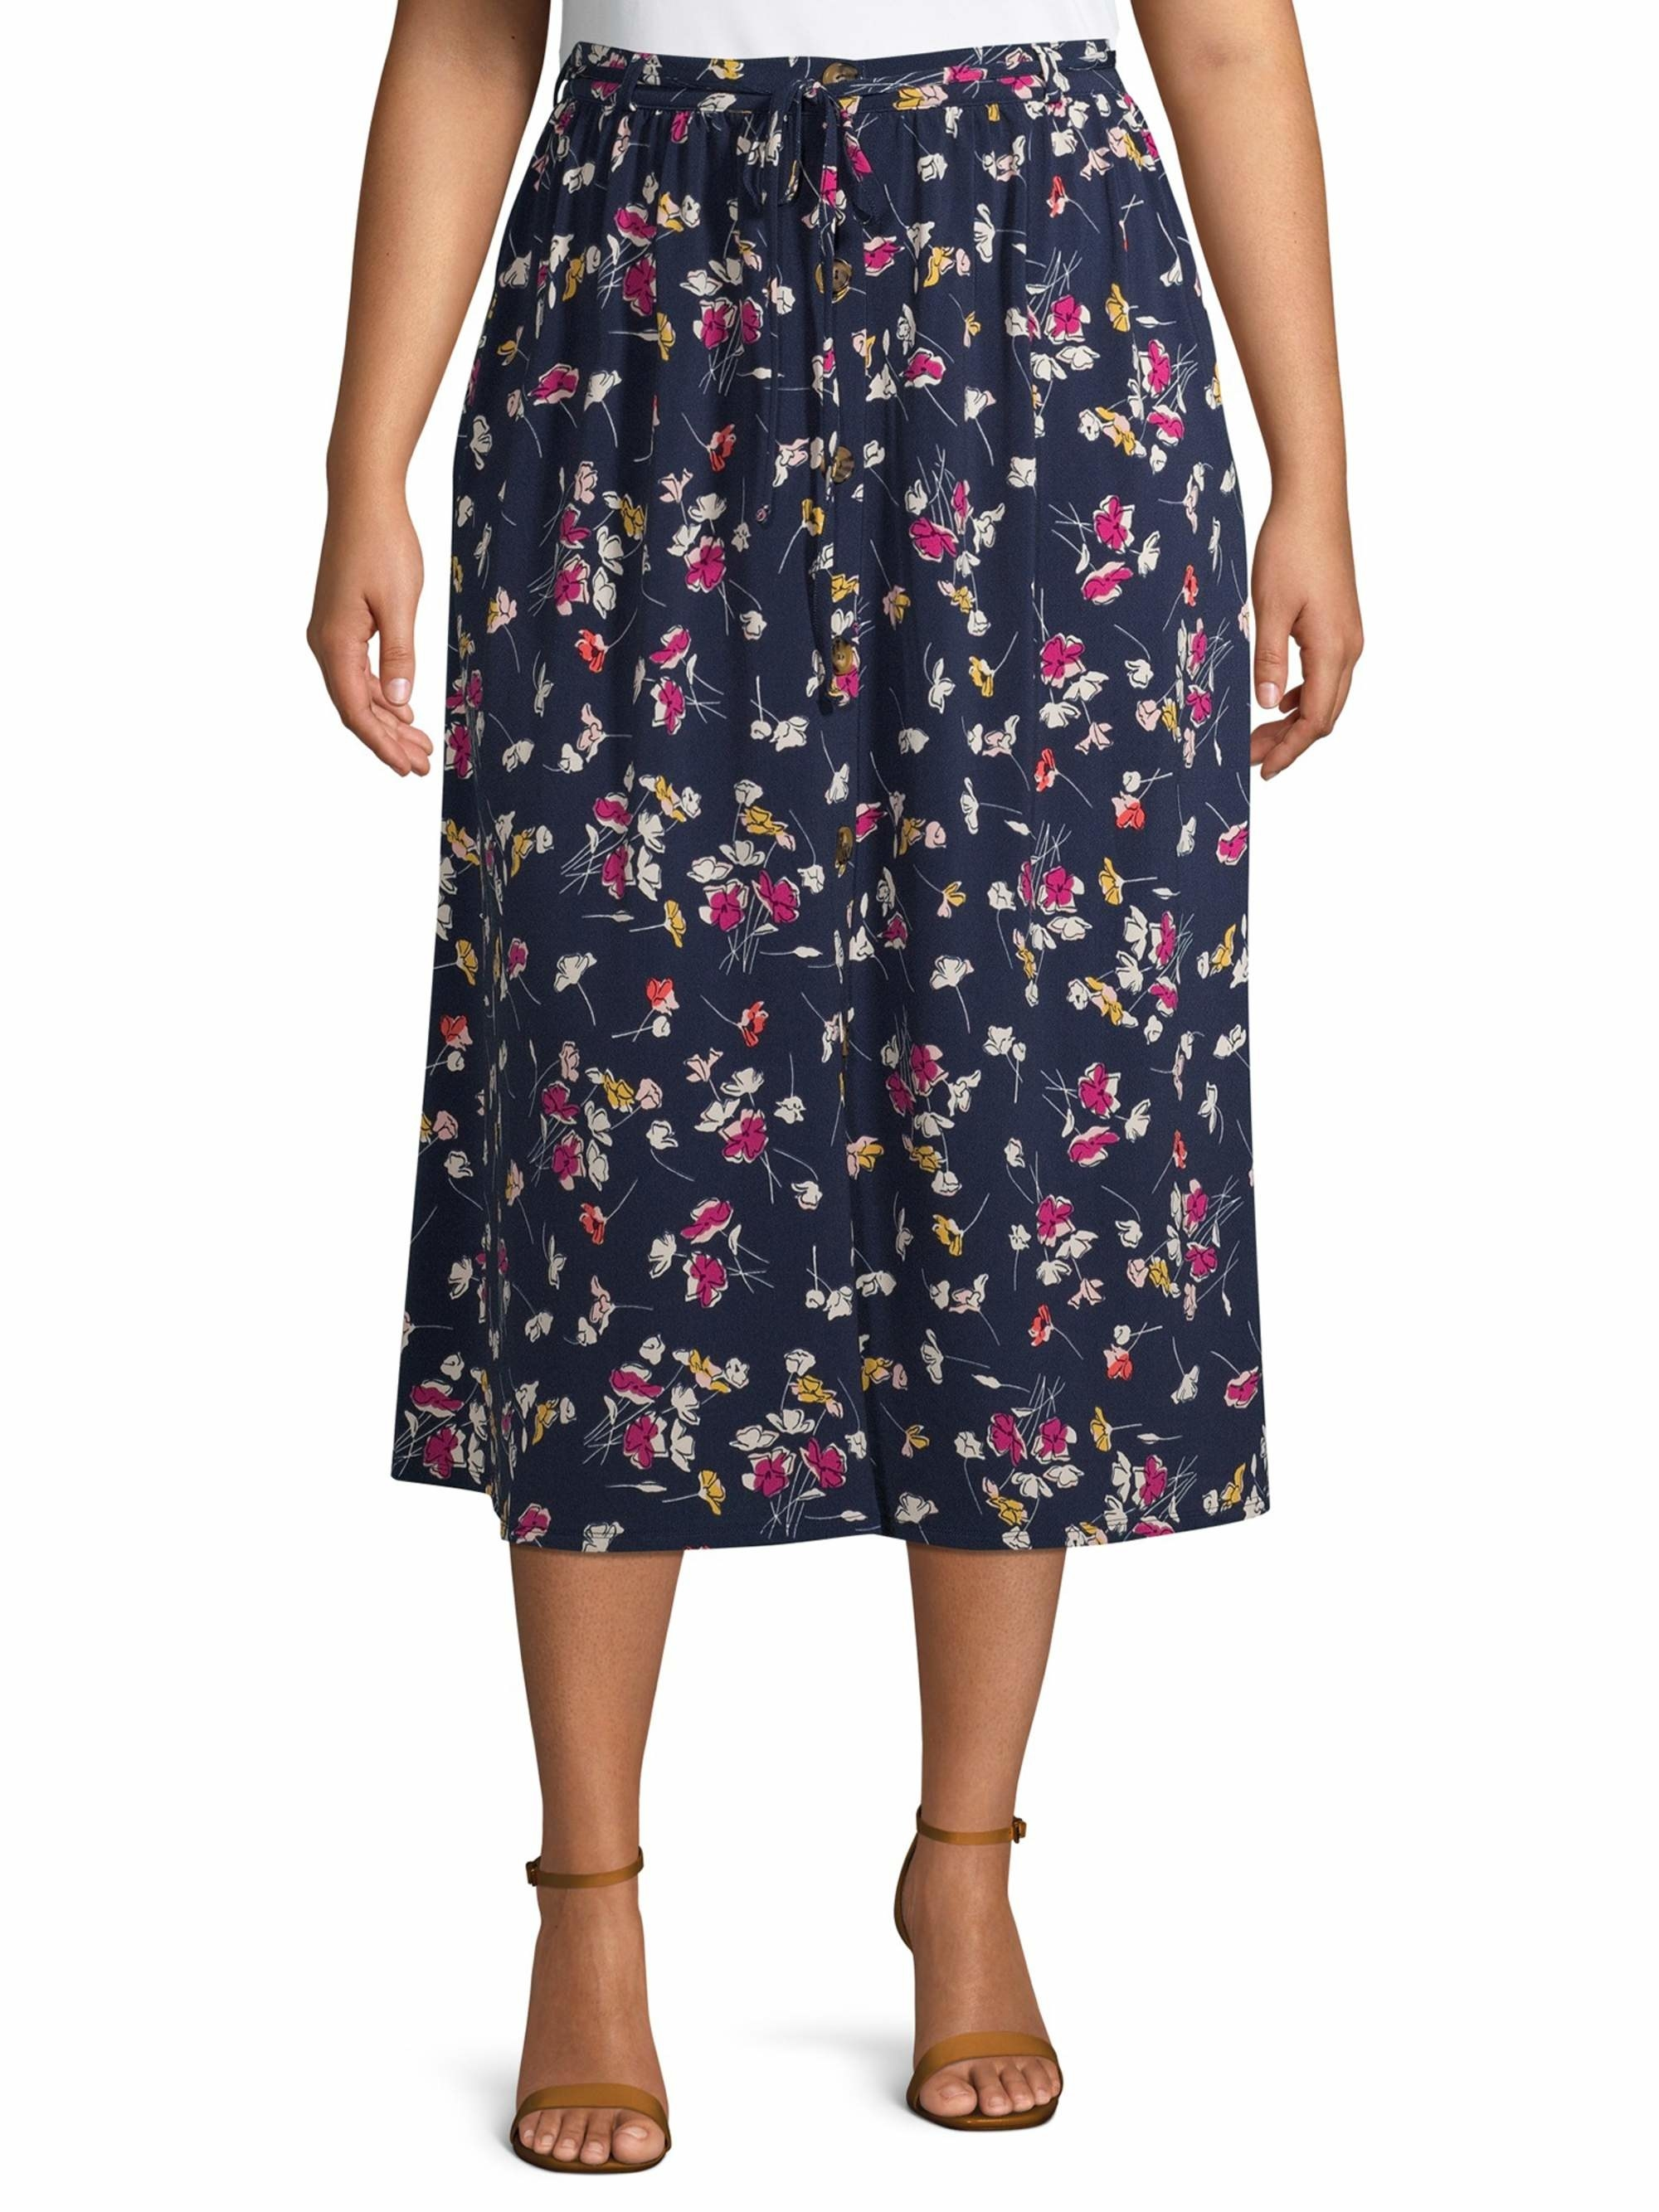 Model wearing the floral midi skirt